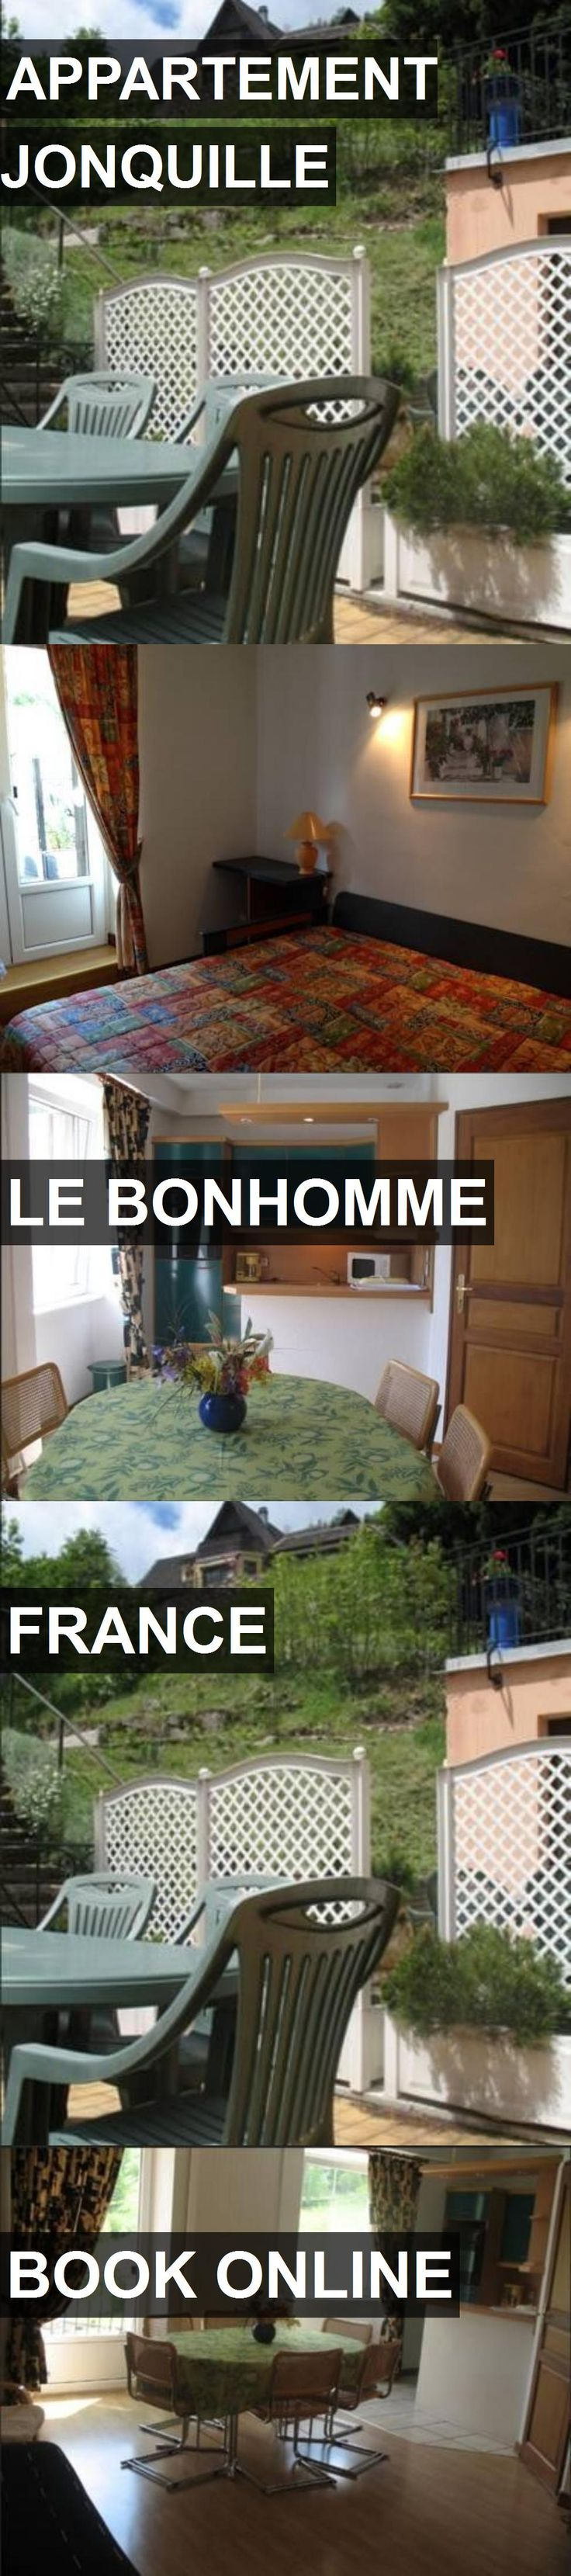 Hotel APPARTEMENT JONQUILLE in Le Bonhomme, France. For more information, photos, reviews and best prices please follow the link. #France #LeBonhomme #travel #vacation #hotel